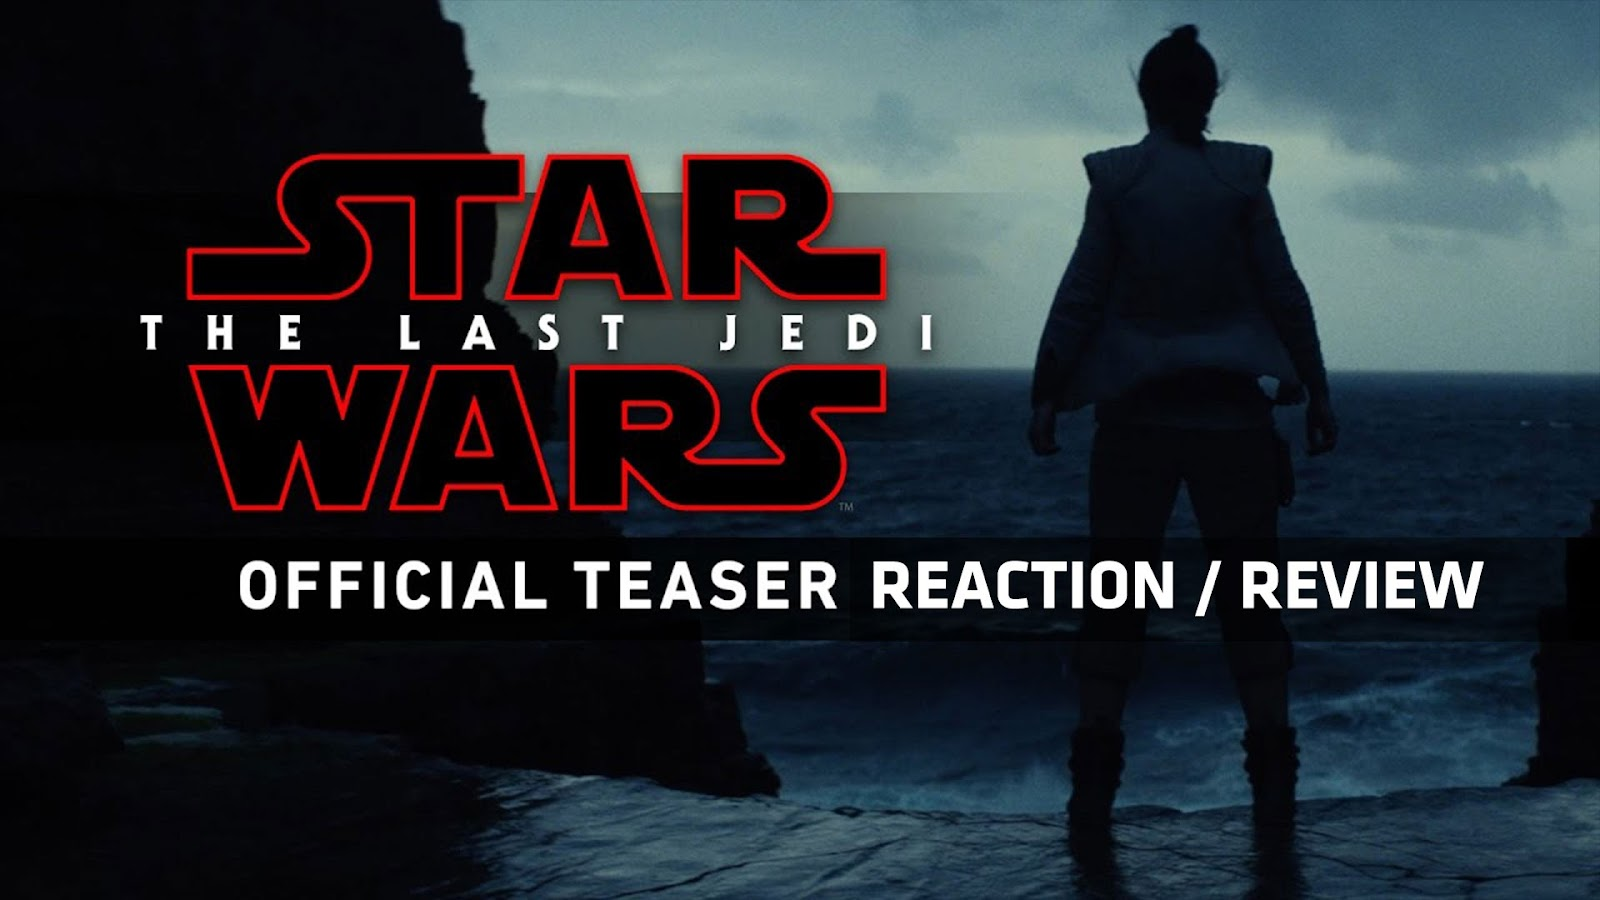 reaction to trailer for Star Wars: Episode VIII - The Last Jedi